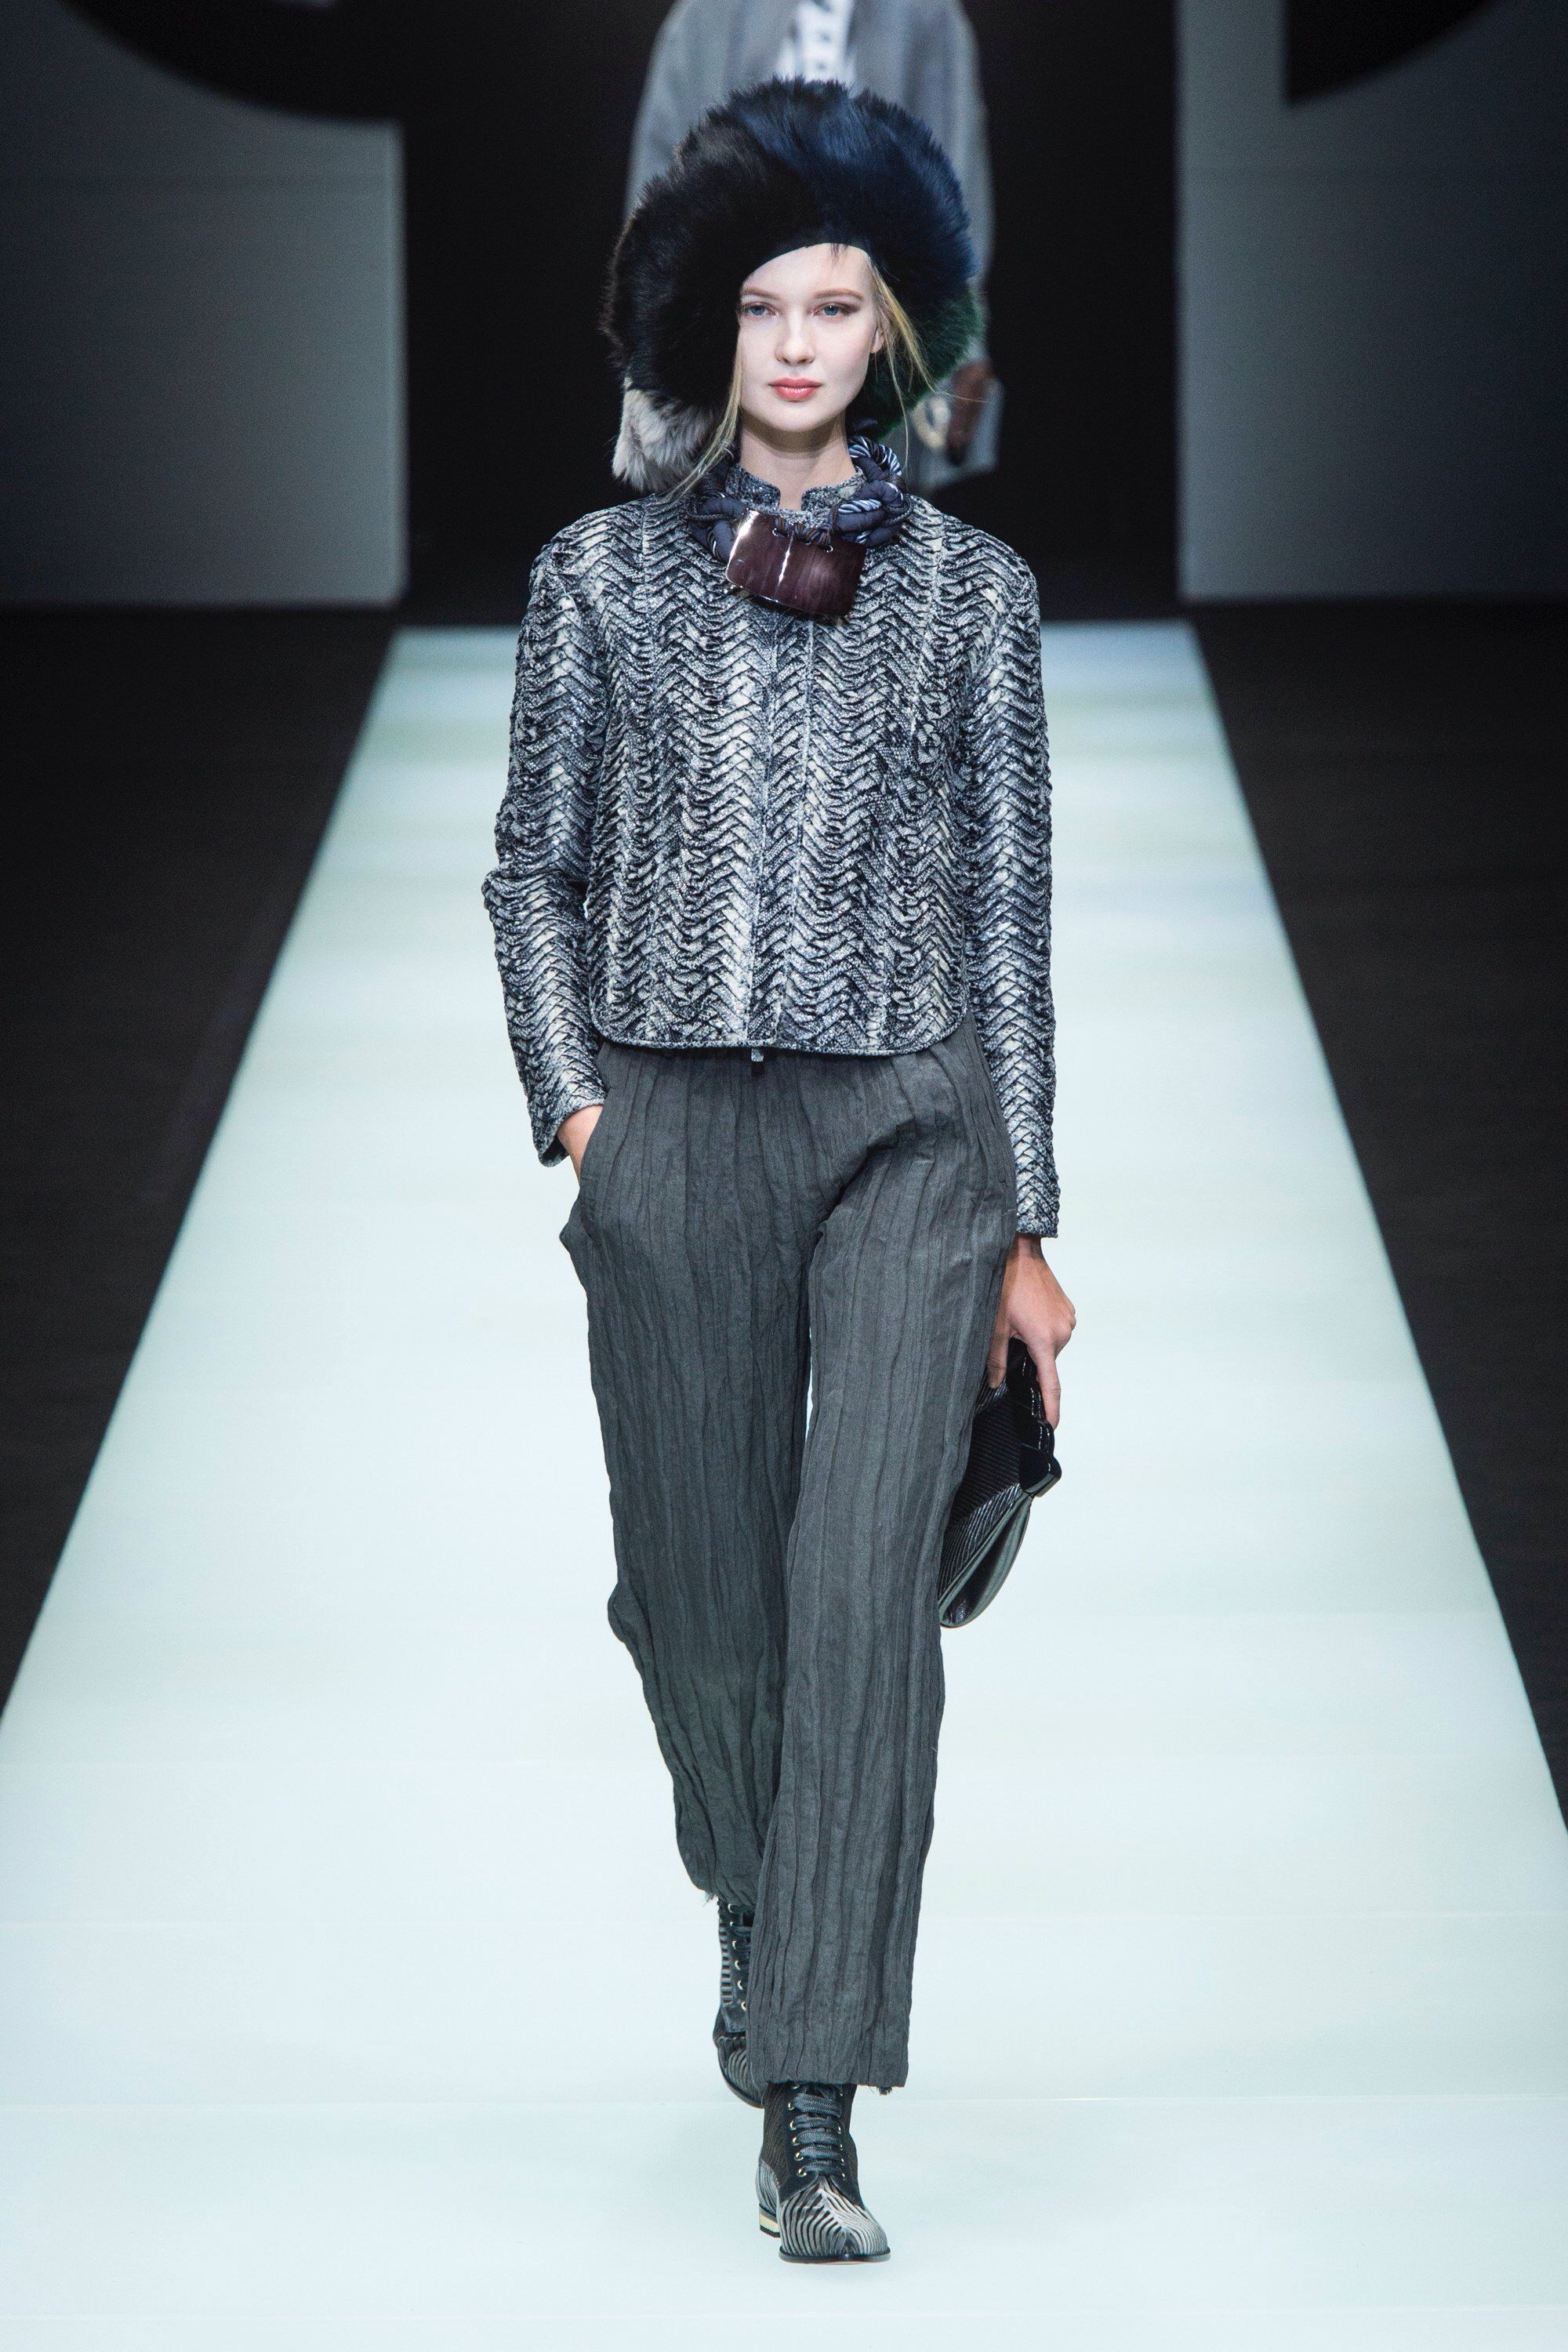 Giorgio Armani Fall 2018 Ready-to-Wear Fashion Show Collection